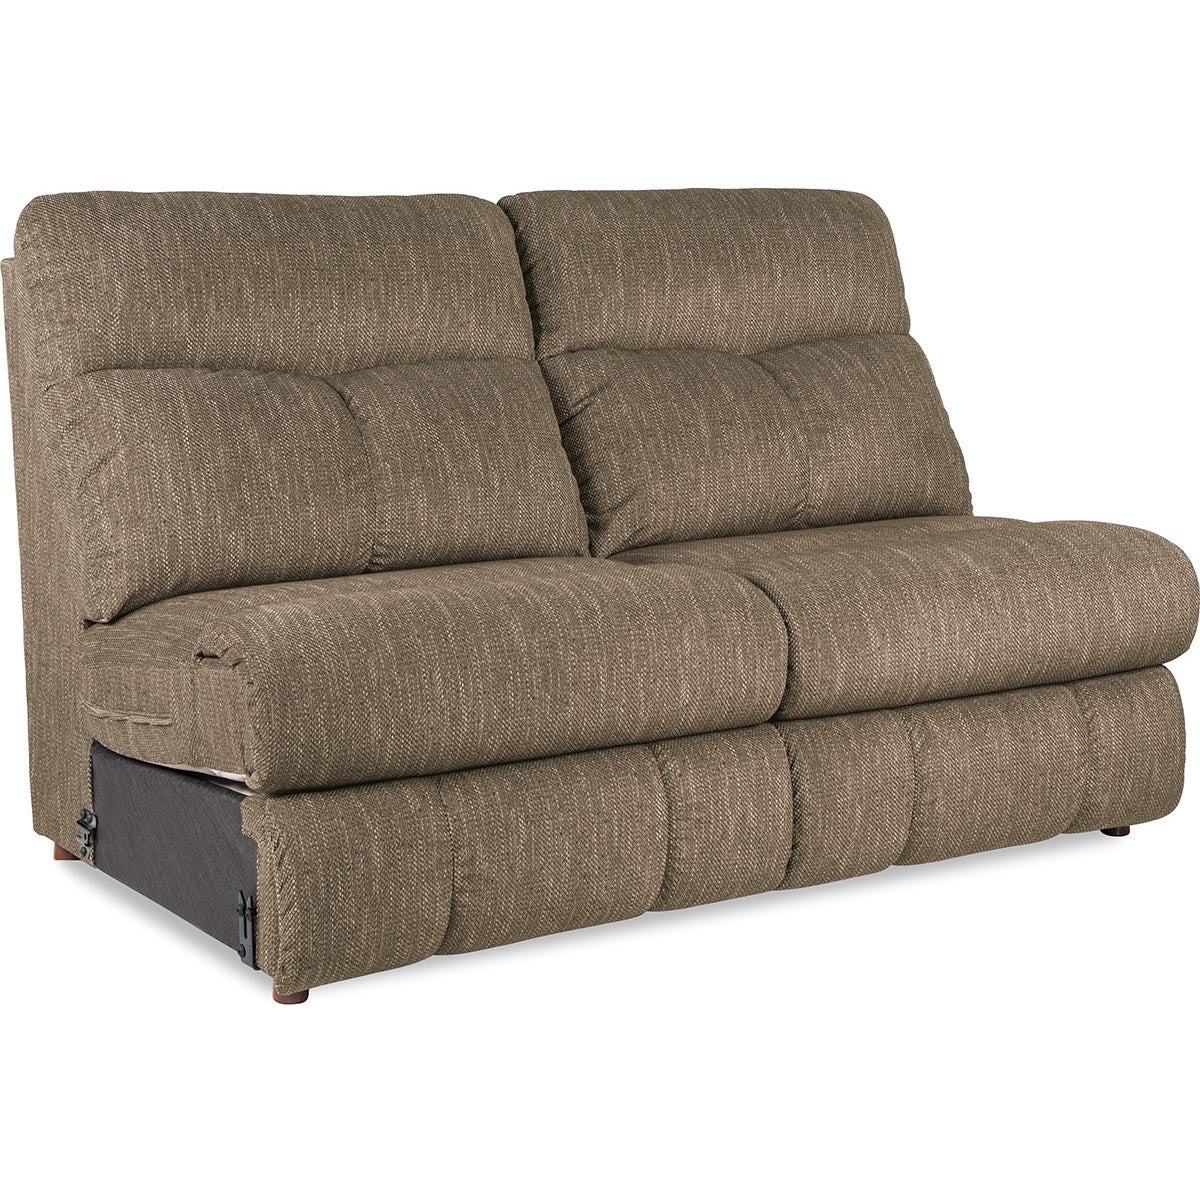 Sheldon La Z Time Armless Loveseat